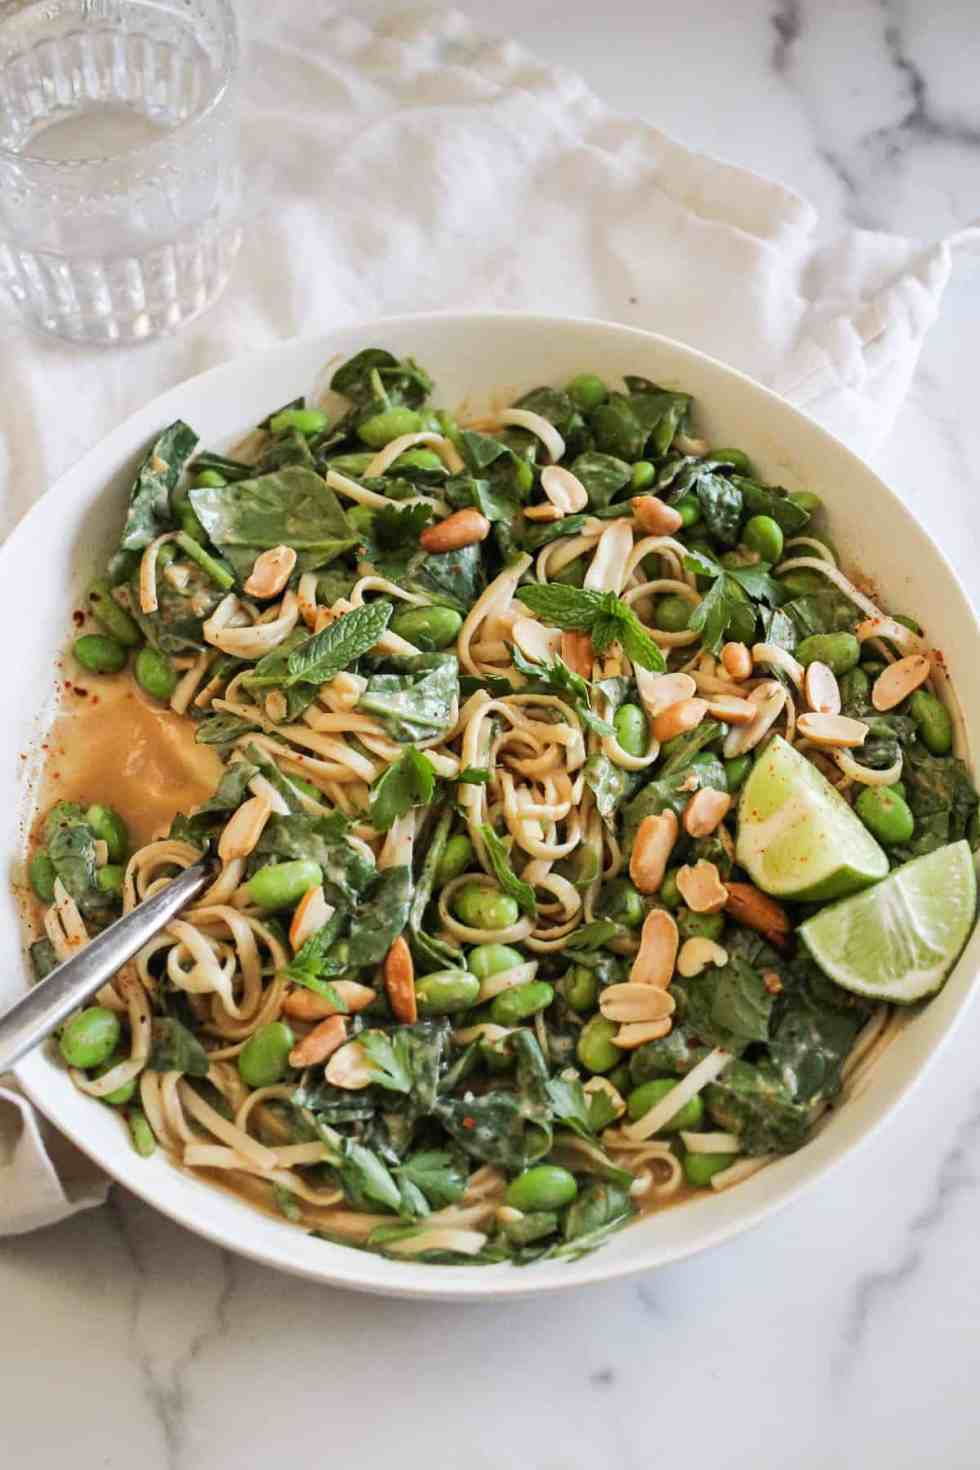 Peanut noodles with edamame and lime in a white bowl on a marble counter.